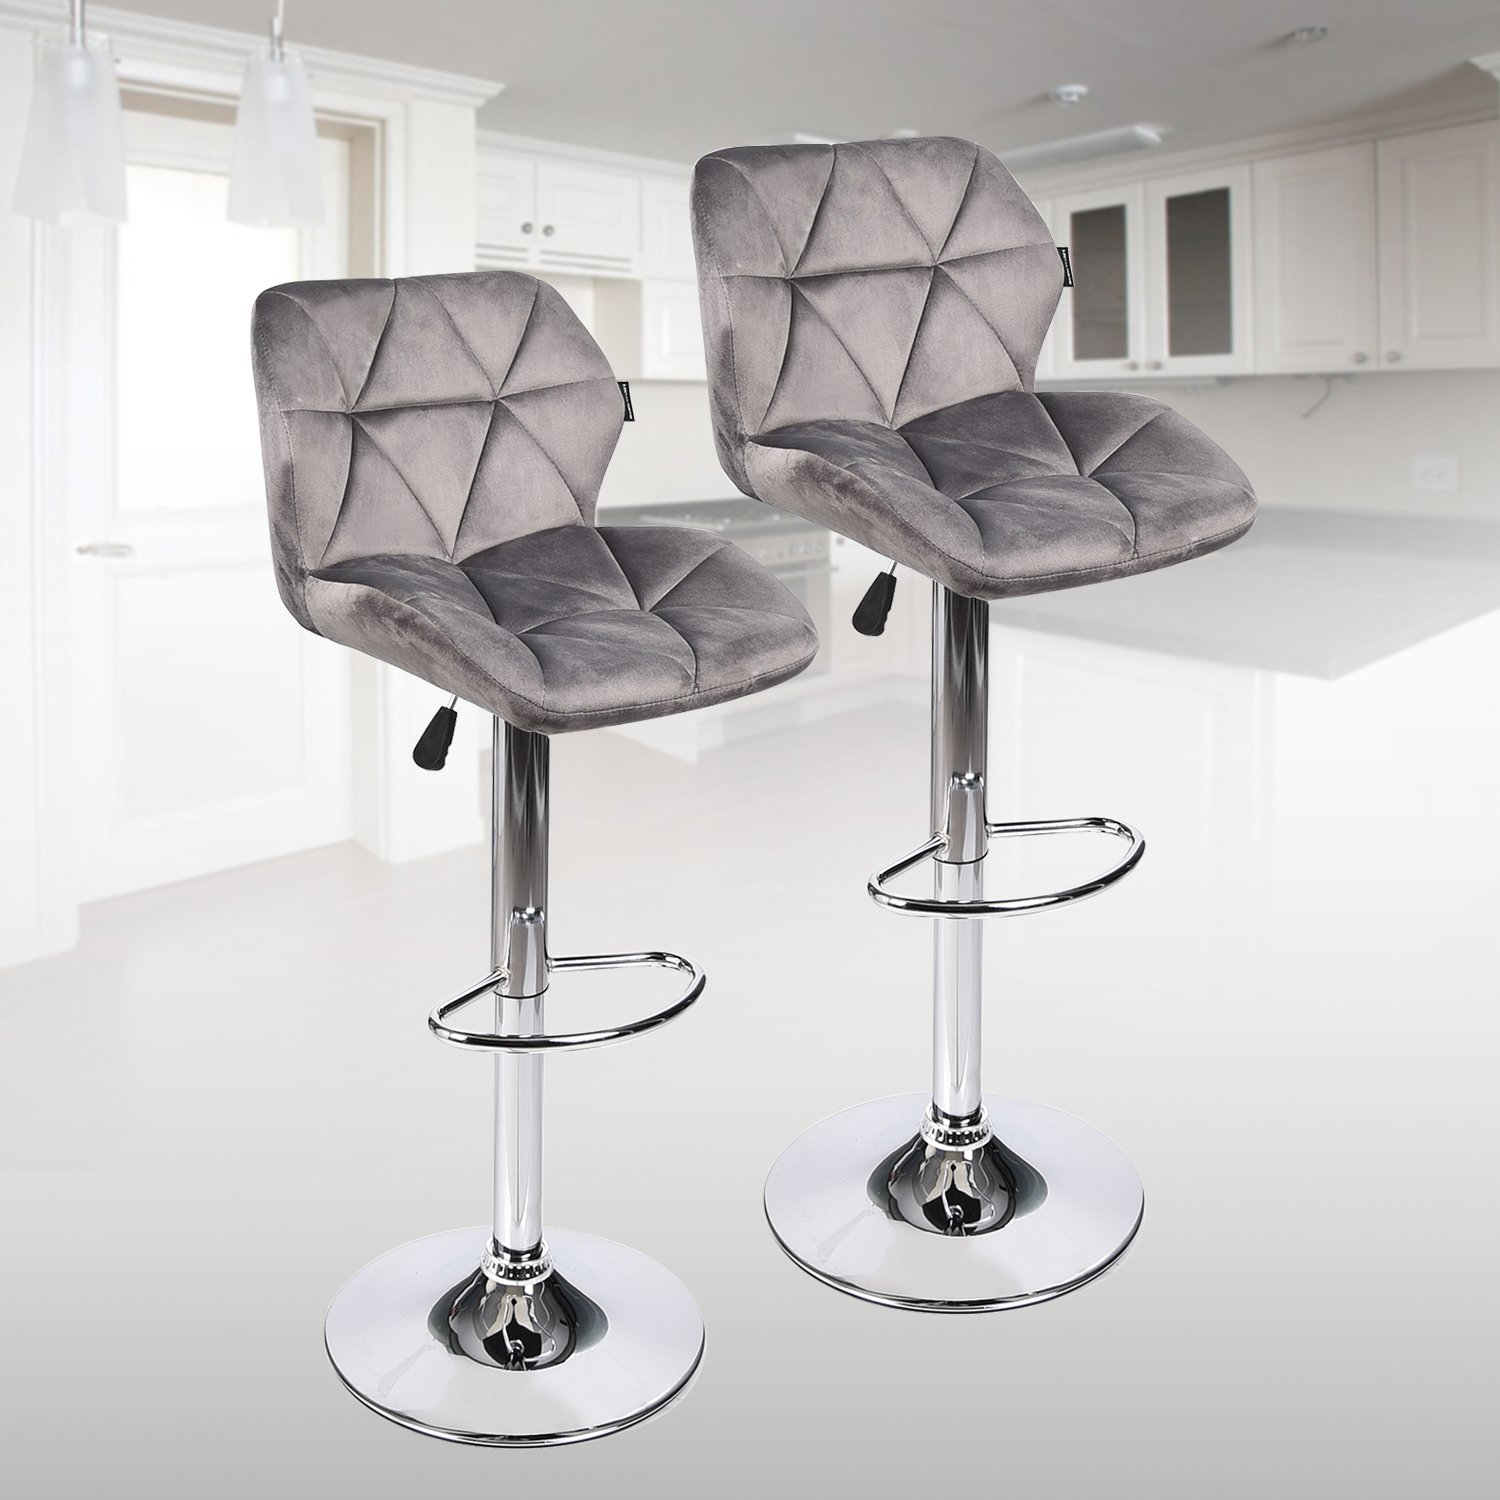 PULUOMIS Bar Stools Modern Hydraulic Adjustable Swivel Barstools, Flannel Padded with Back, Dinning Chair with Chrome Base, Set of 2, Grey Flannel